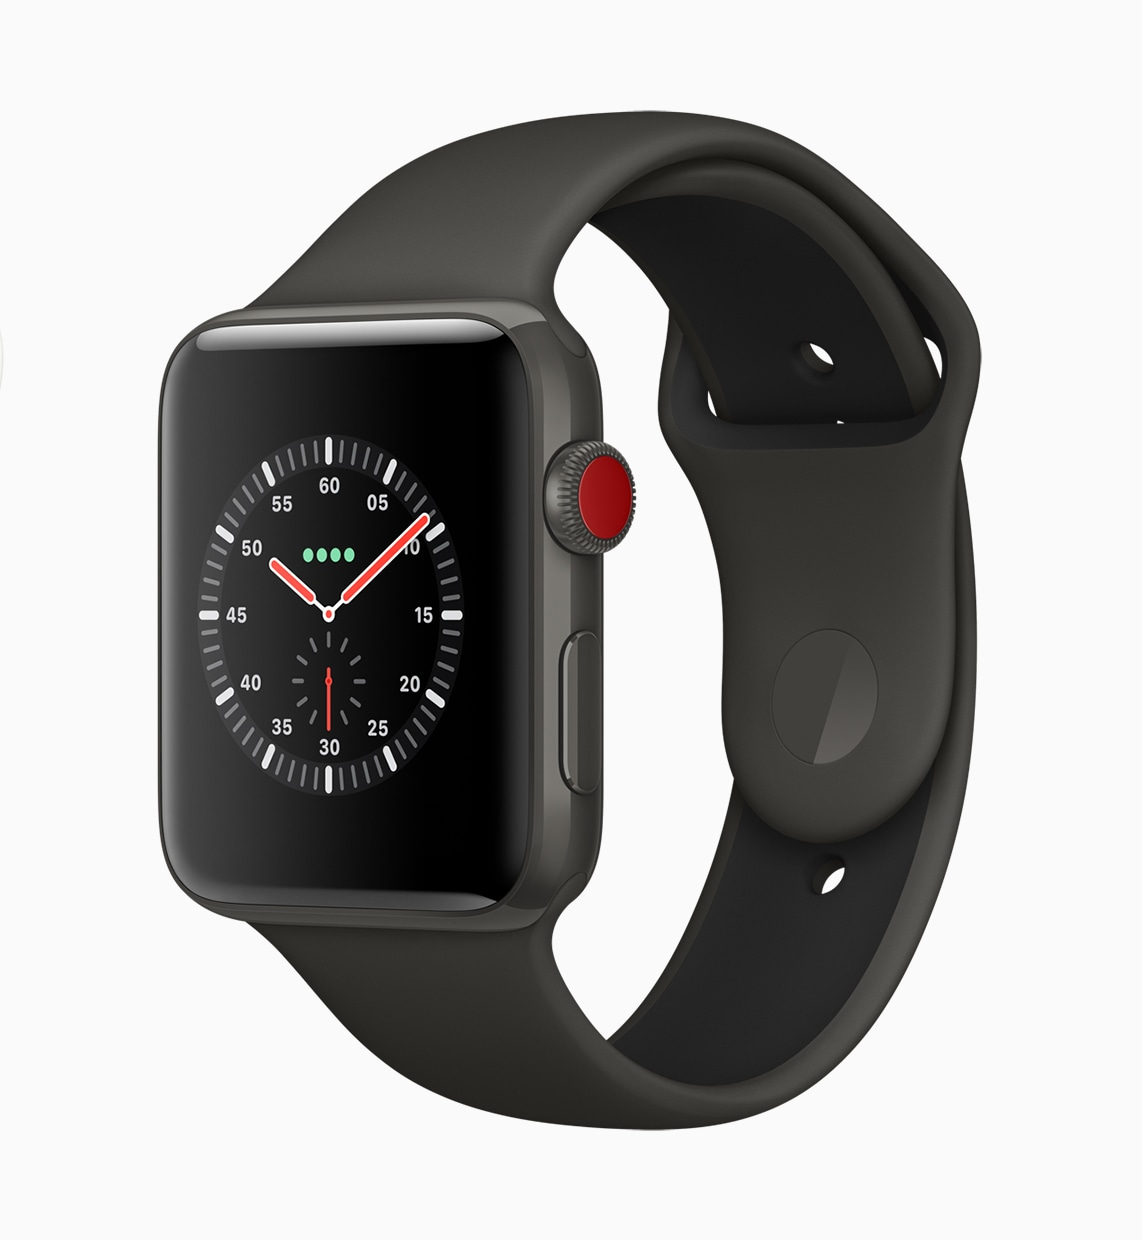 Apple Watch Series 3 com Digital Crown vermelha e conectividade celular